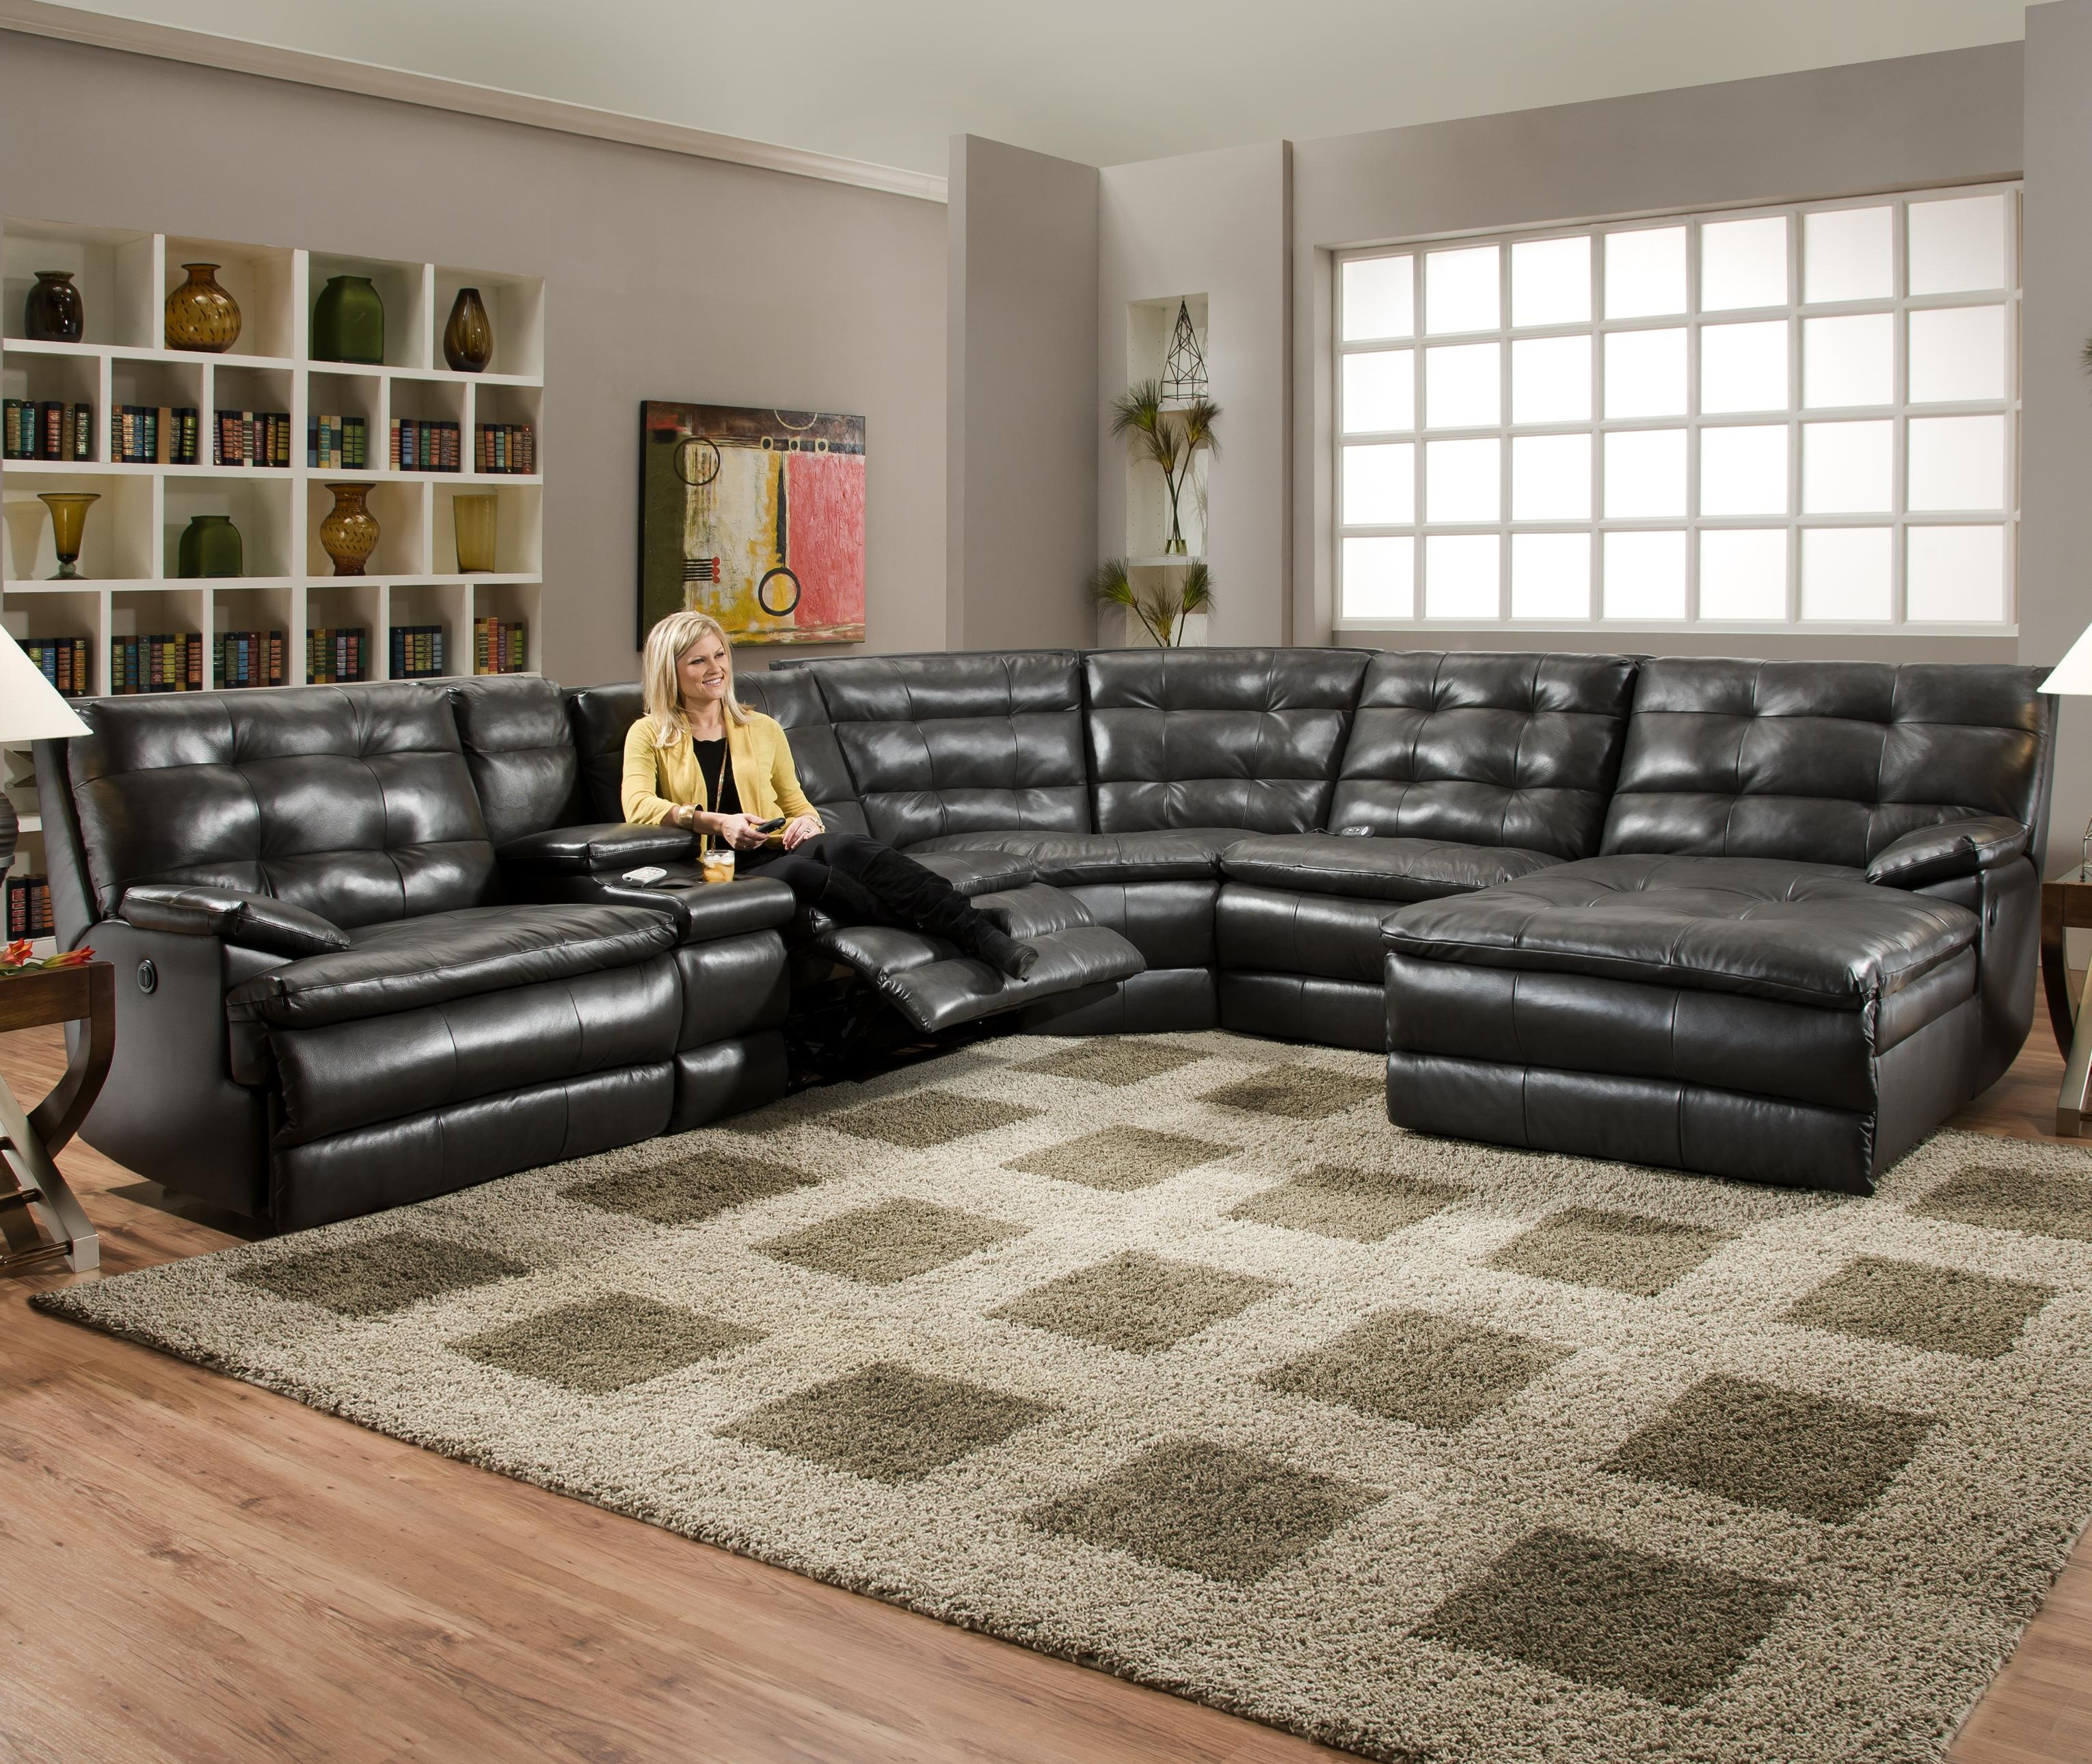 Sofas And Sectionals Sofas And Sectionals Couch With Recliners Throughout  Big Sofas Sectionals (#10